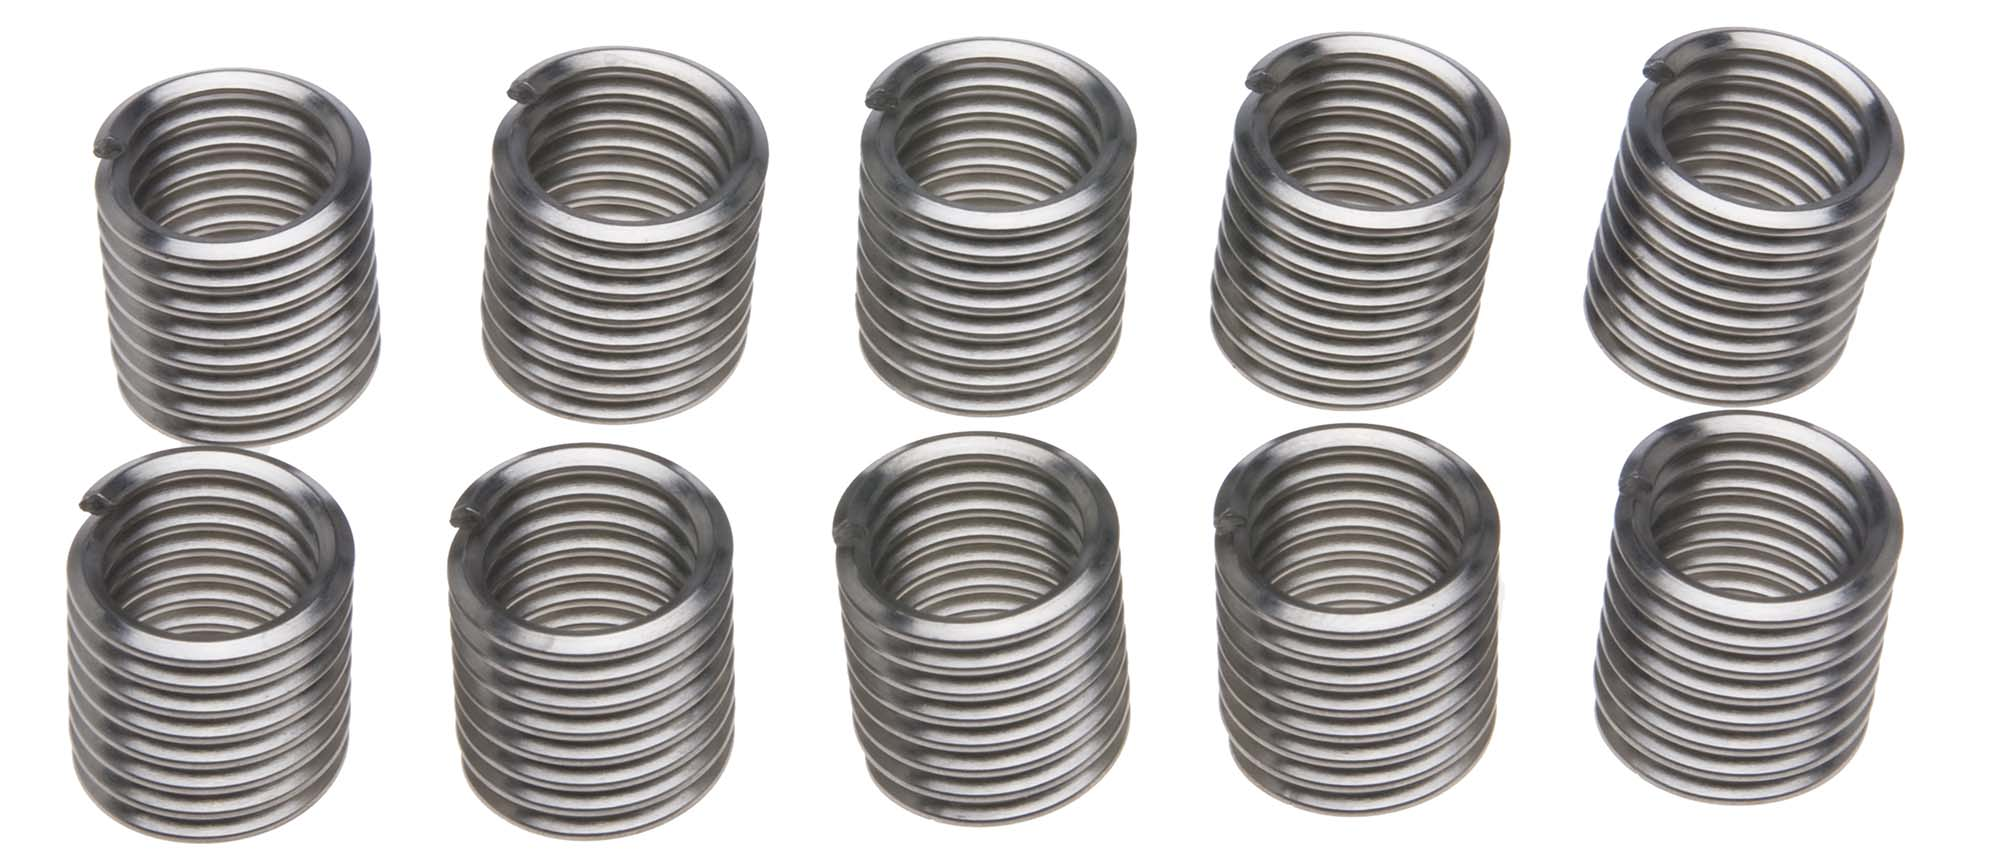 12mm Recoil Insert Pack (10)